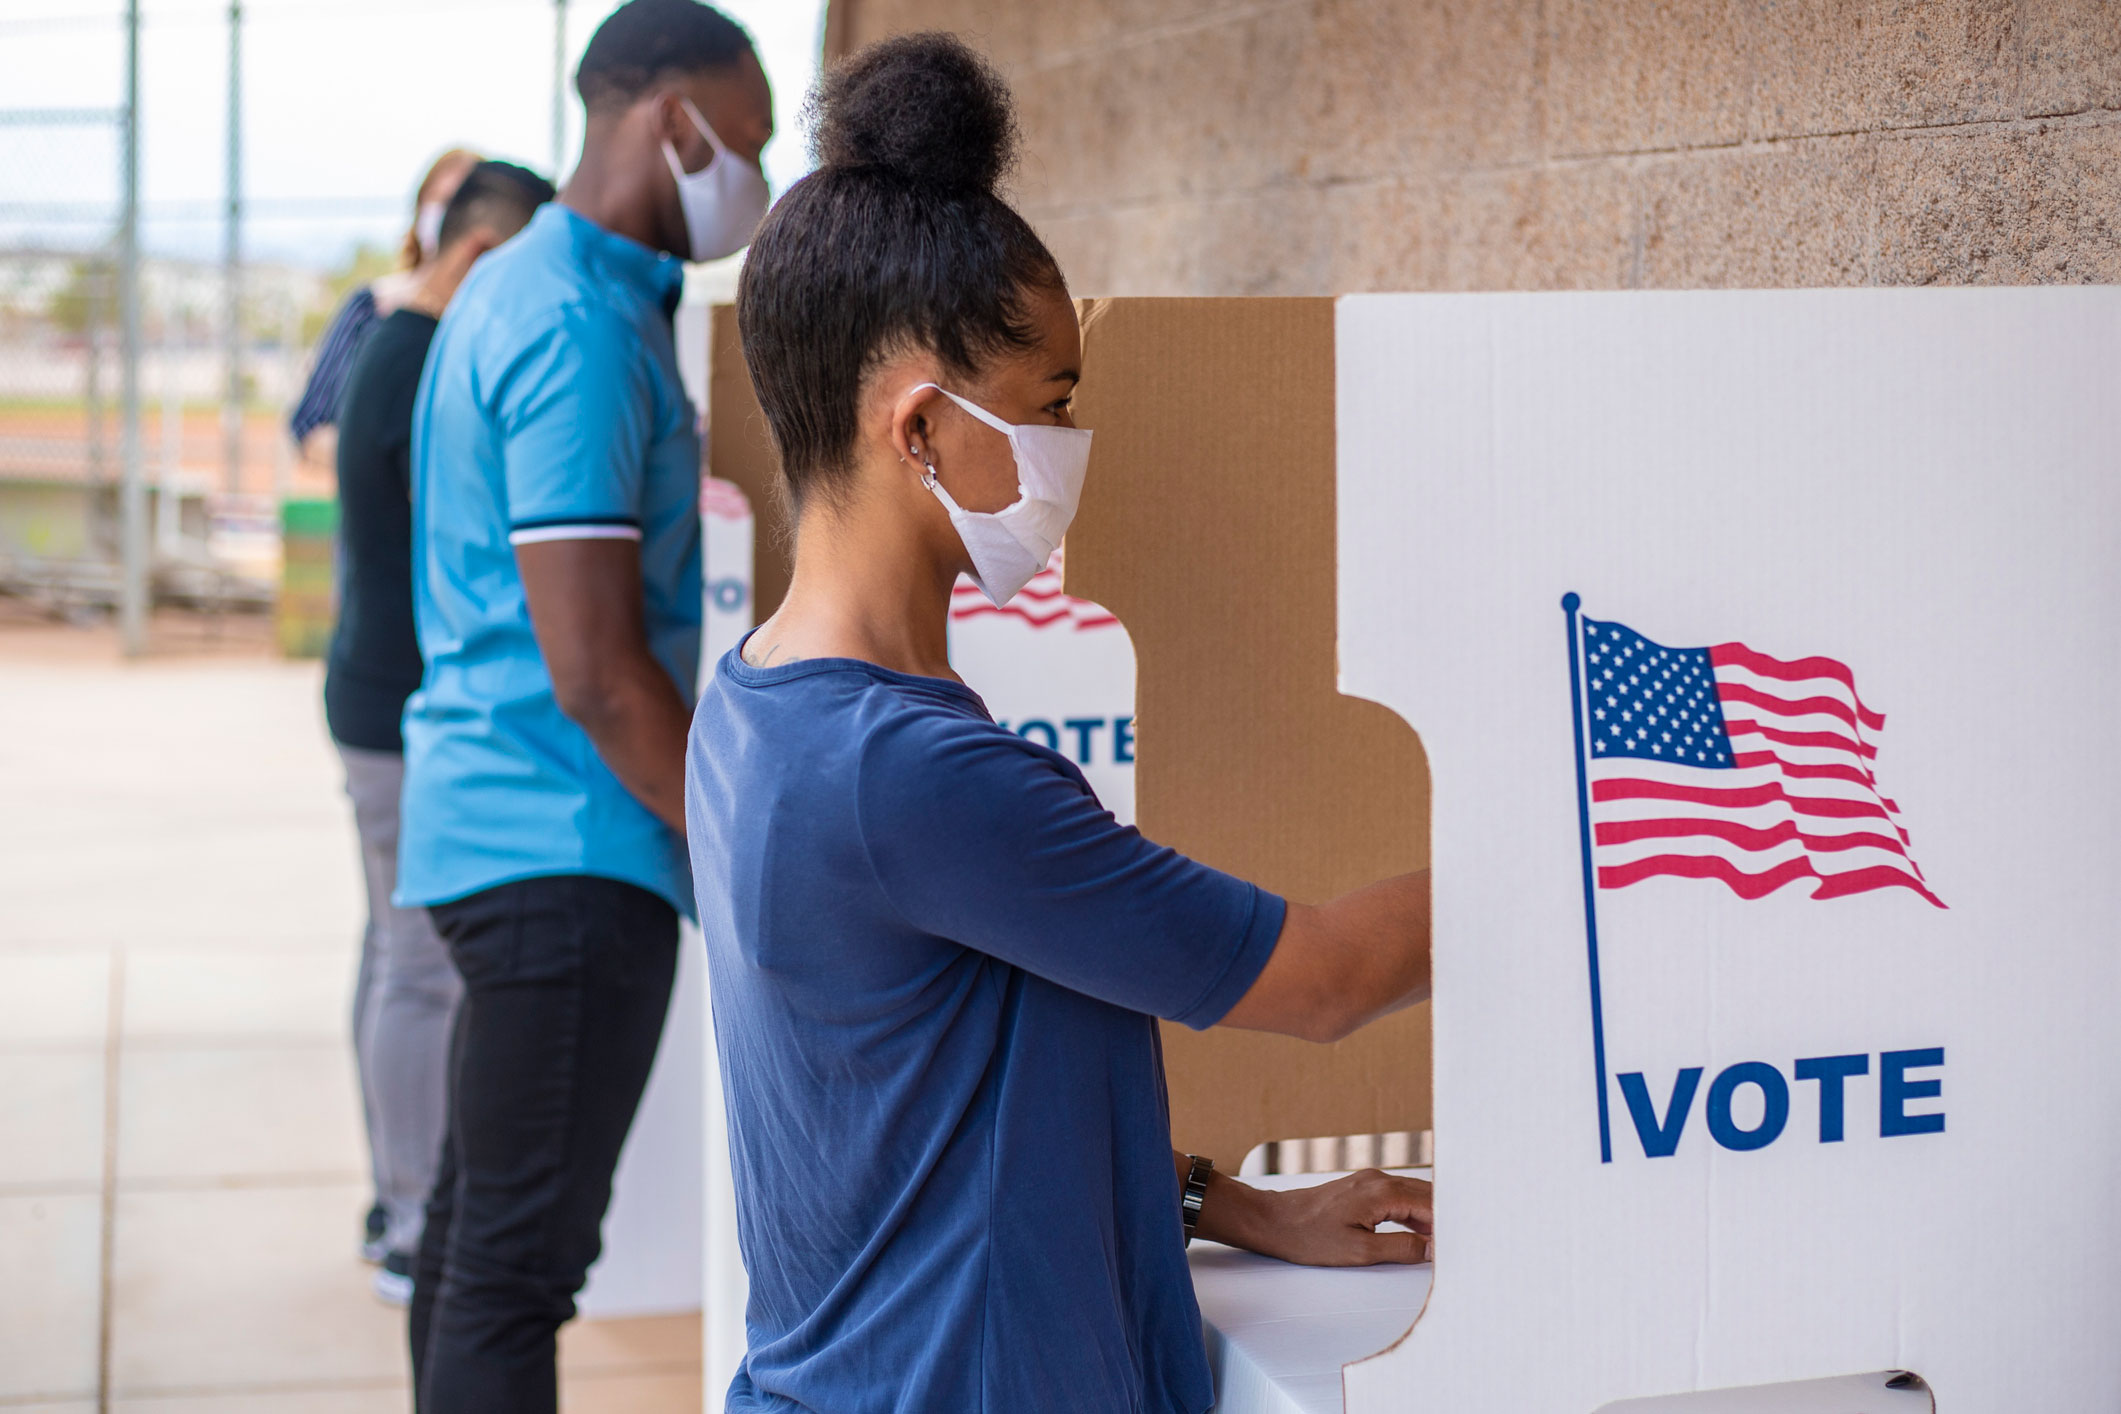 Why Seismic's U.S. offices will be closed on election day